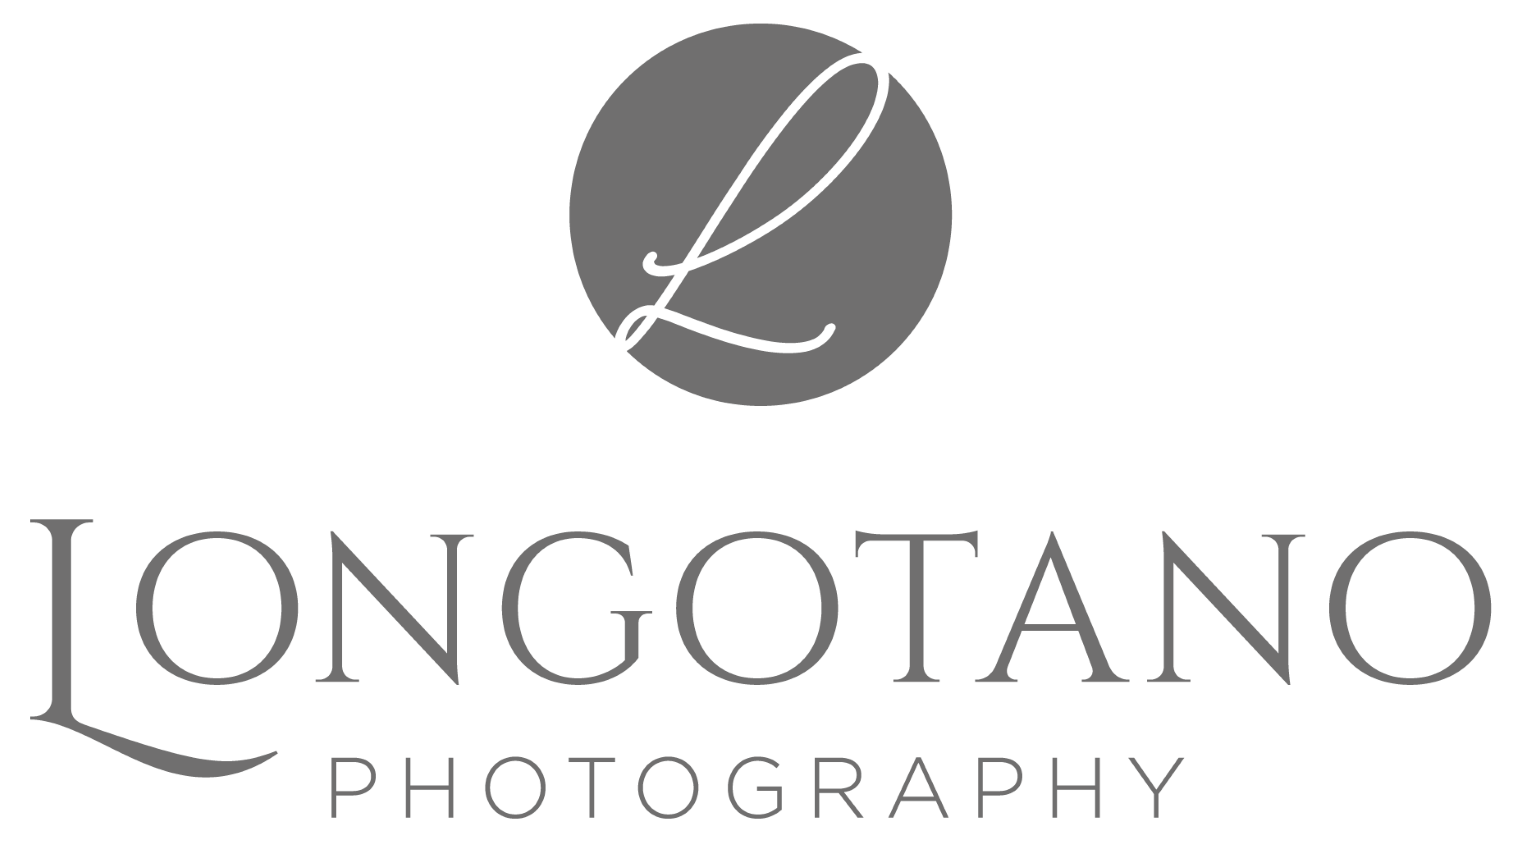 Longotano Photography Logo Grey 01 1